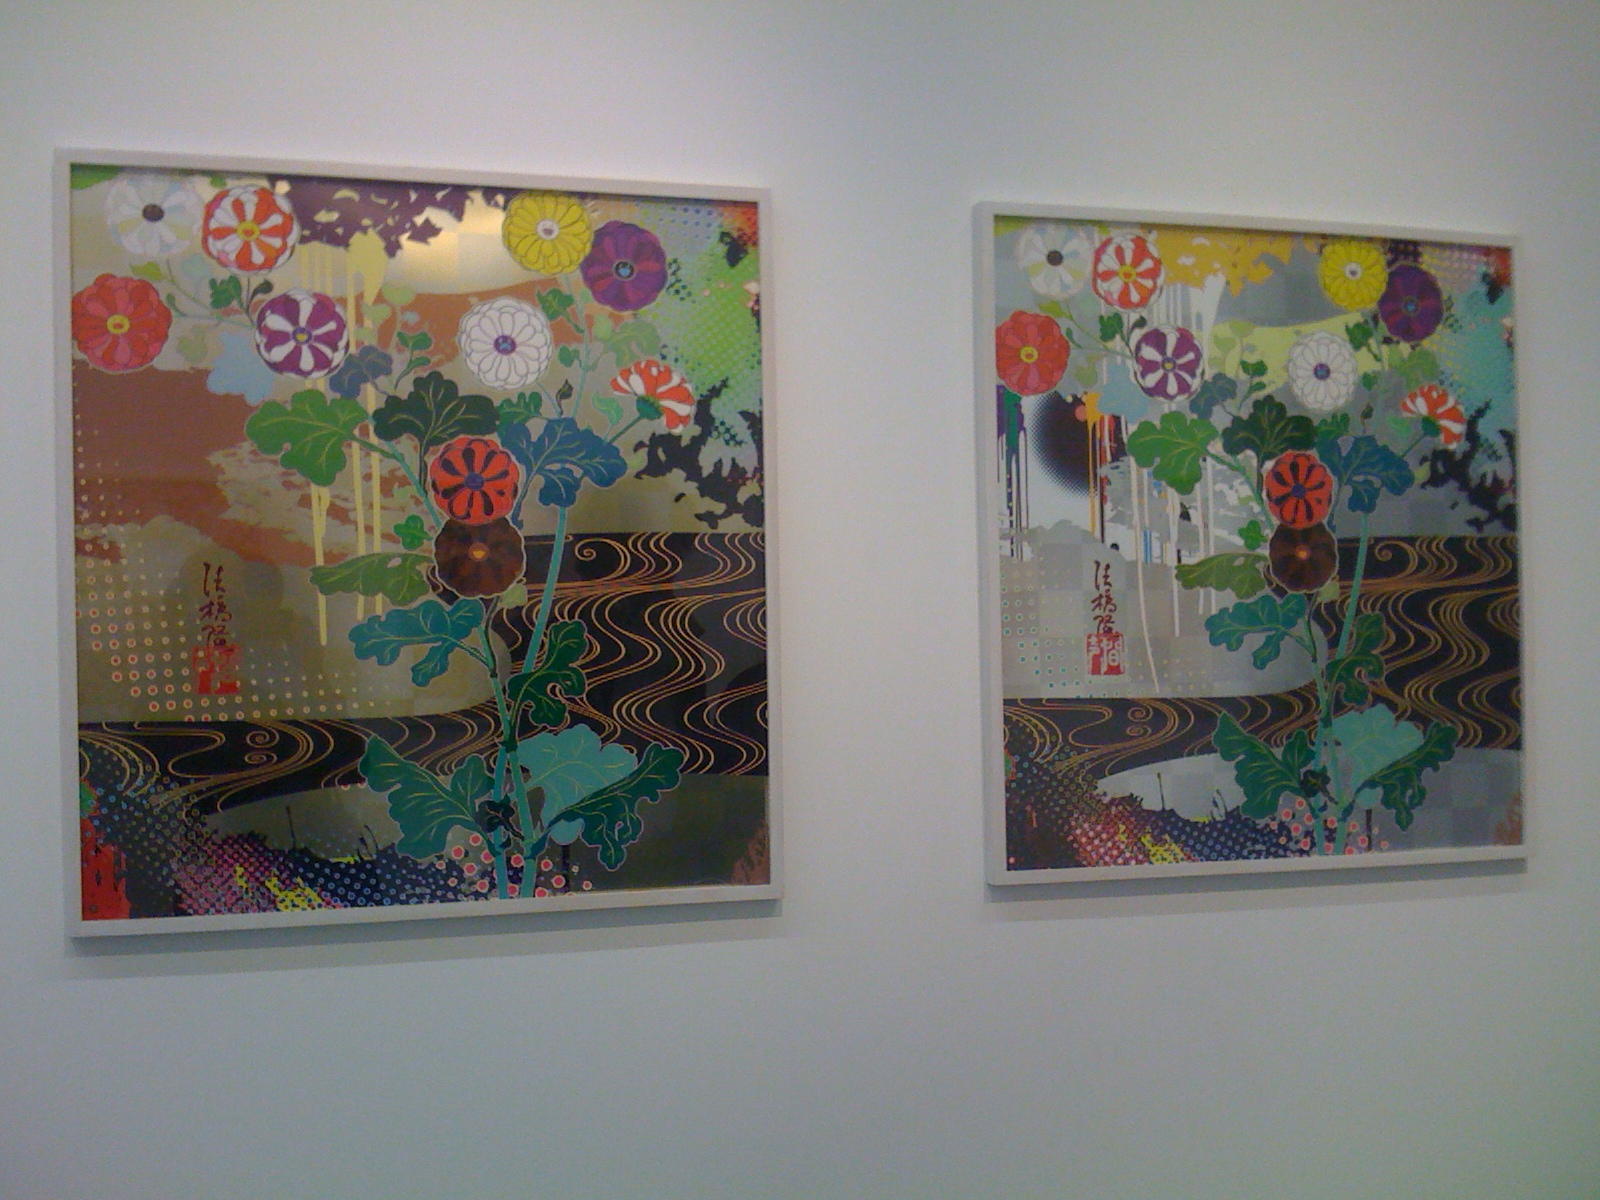 takashi murakami l 39 andy warhol japonais expose la galerie perrotin zest for art blog art. Black Bedroom Furniture Sets. Home Design Ideas